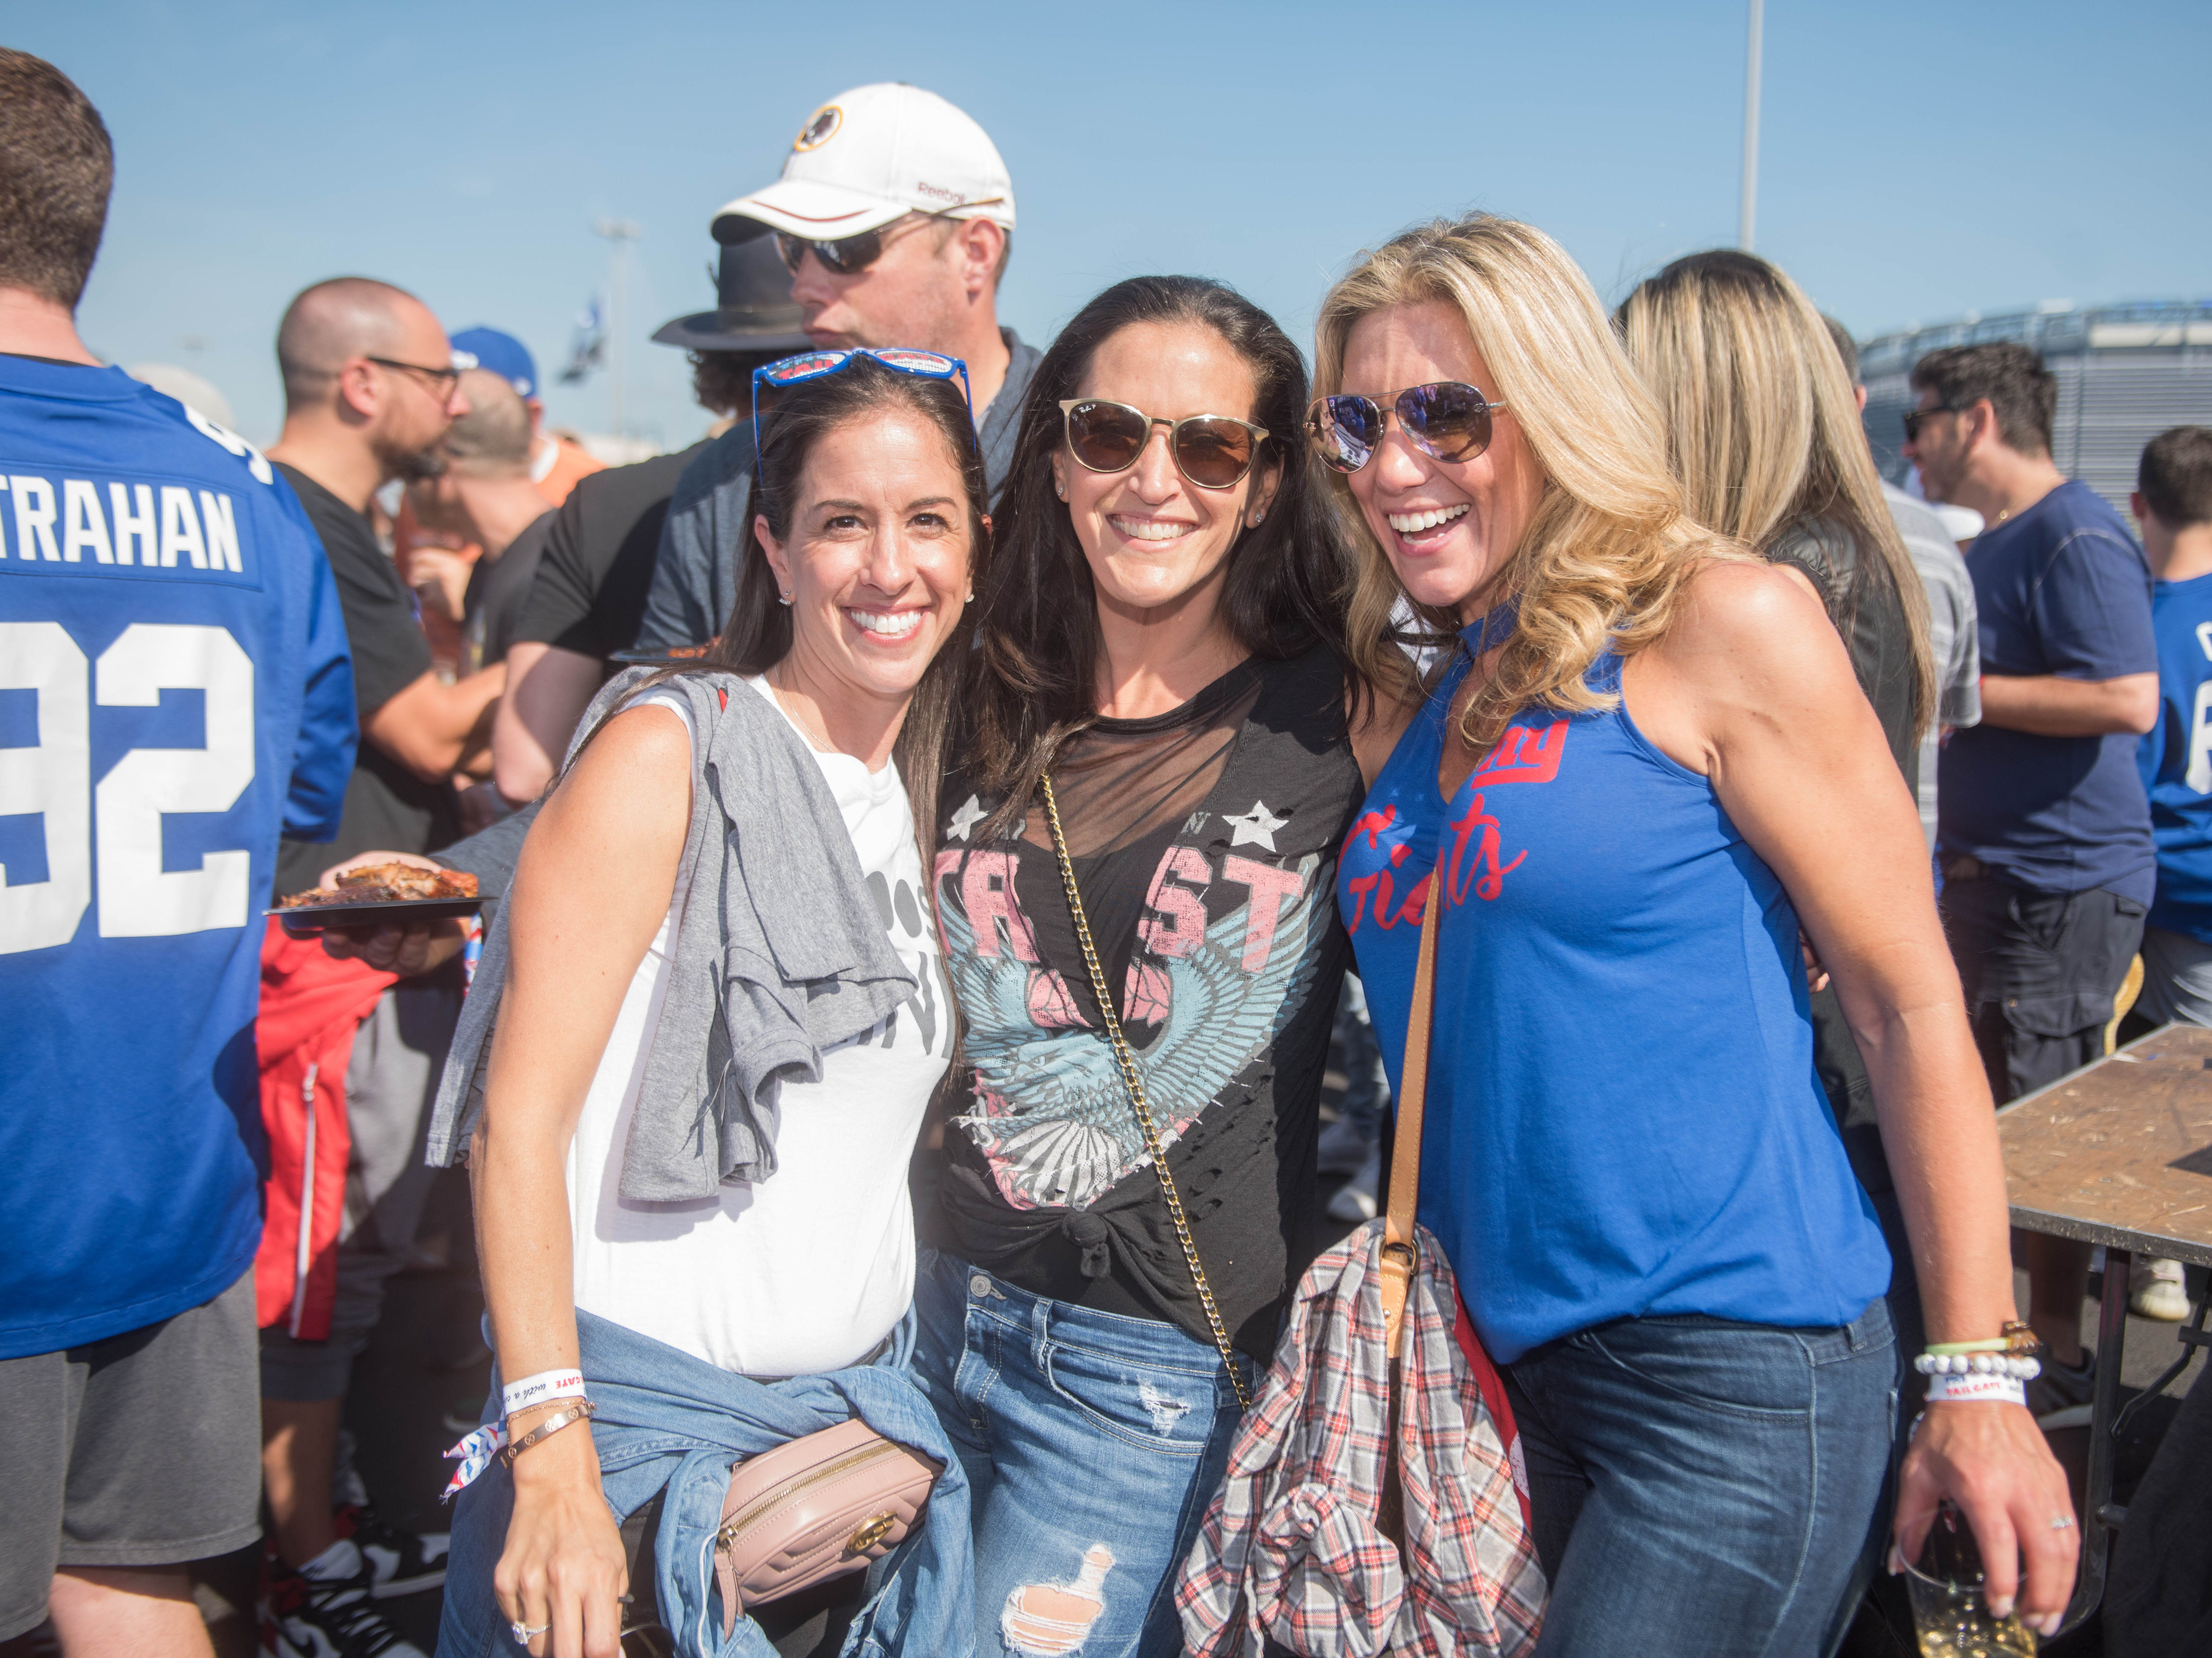 Marissa Rown, Michelle Levitt and Marissa Kochnover at the Giants vs. Saints tailgate party, Sunday, Sept. 30, 2018.